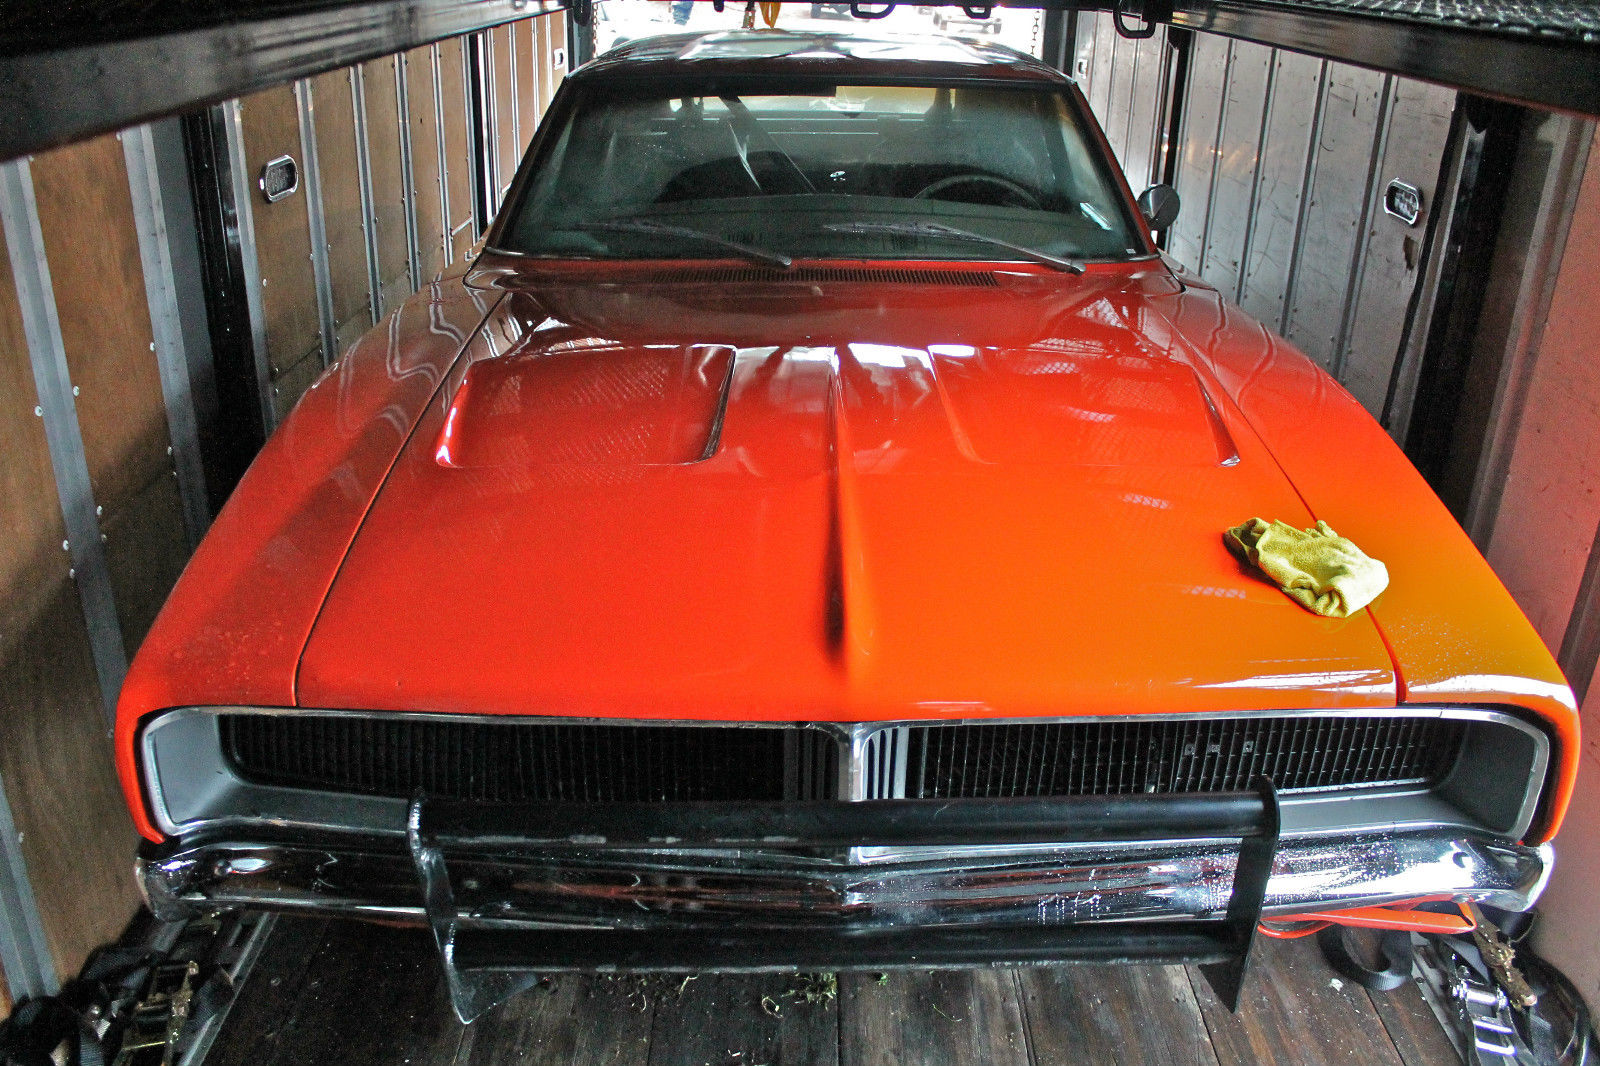 lee general charger dodge trader 1969 autotrader another